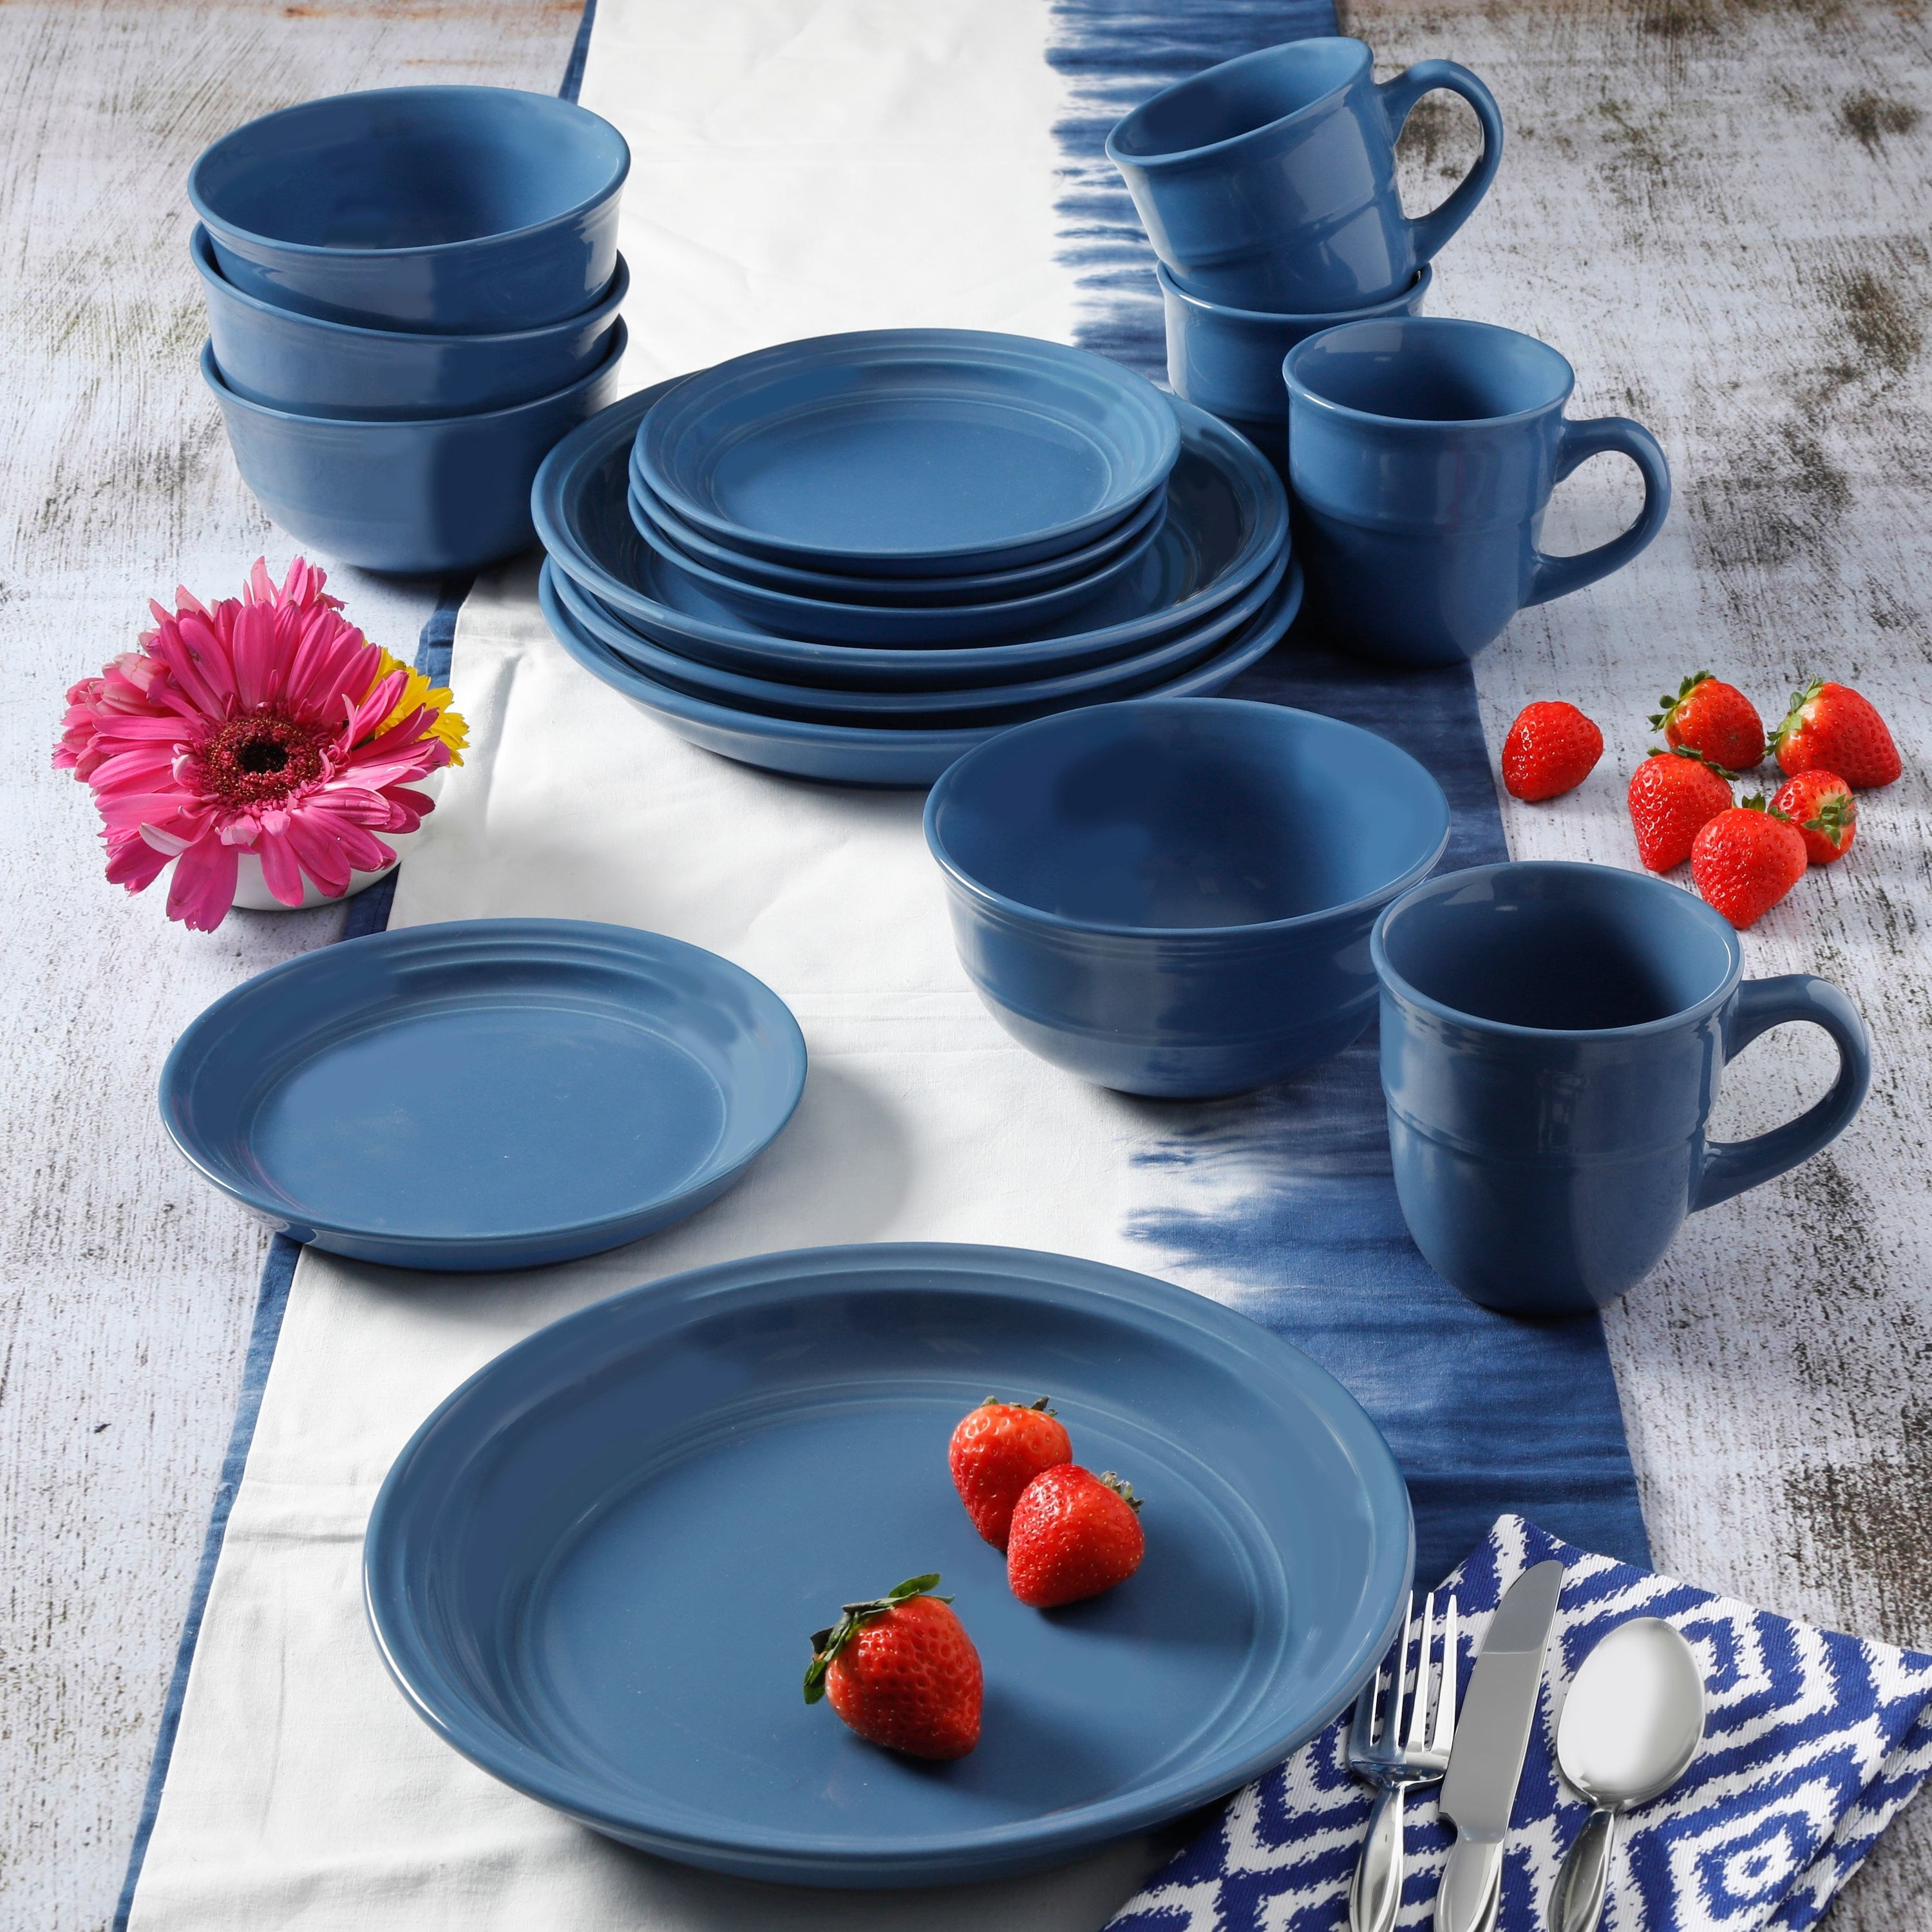 The dinnerware set in the color cobalt